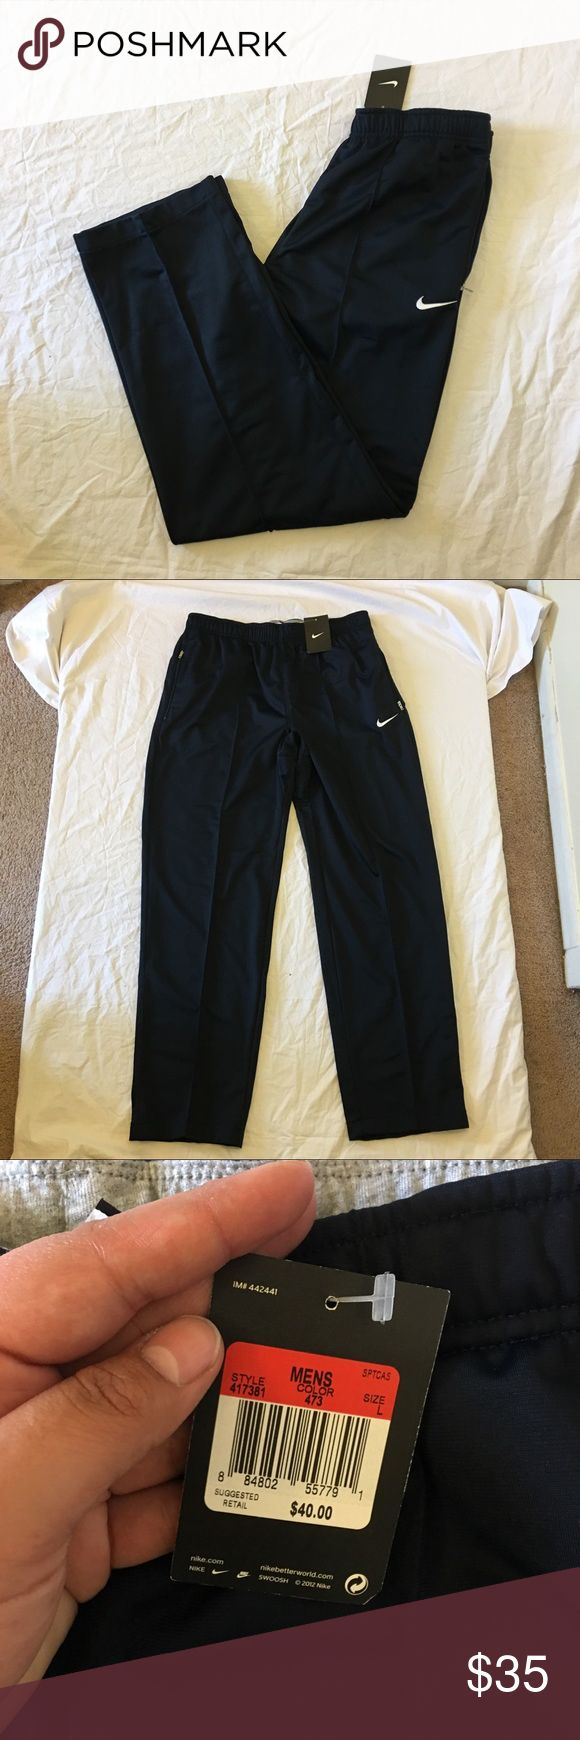 """Nike Logo Navy Track Athletic Pants Type: Pants  Style: Wide Leg  Brand: Nike  Color: Navy  Condition: new with tag Country of Manufacture: Thailand  Material: 100% Polyester  Measurements: Waist: 15"""" inseam: 31"""" length: 41"""" Nike Pants Sweatpants & Joggers"""